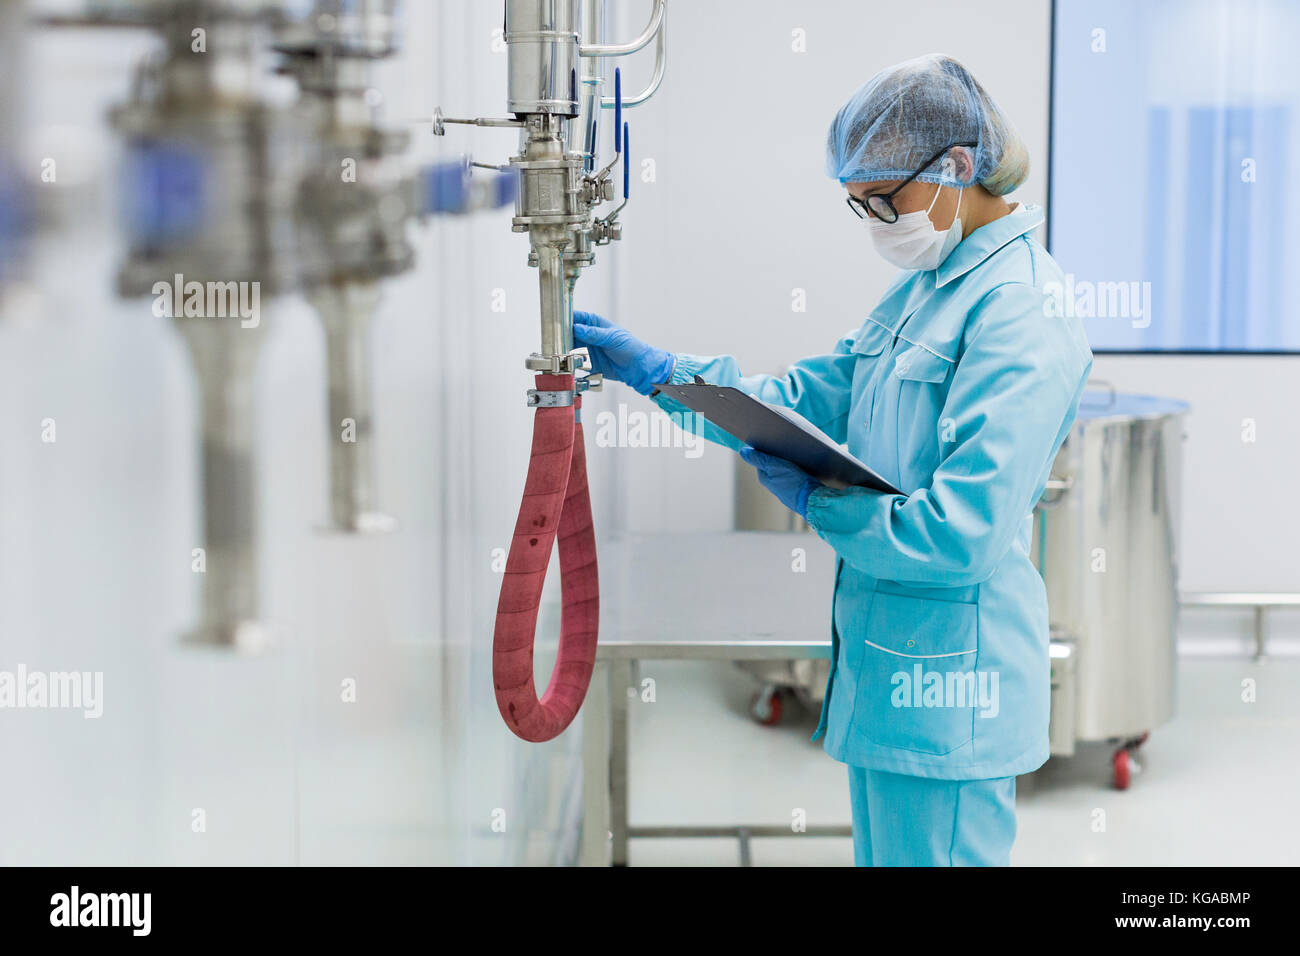 scientist is working with pressure meter in lab - Stock Image